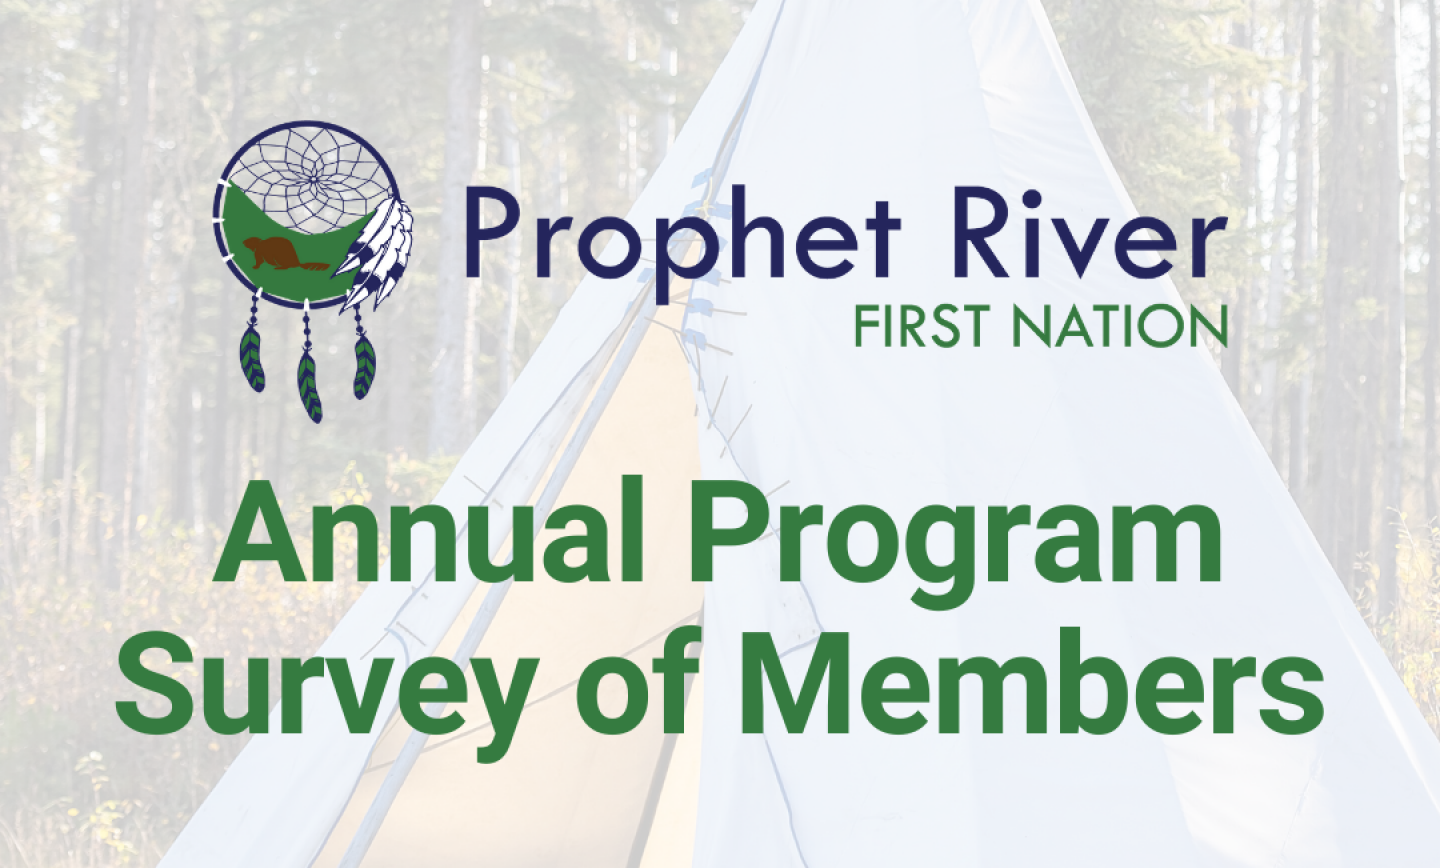 Annual Program Survey of Members